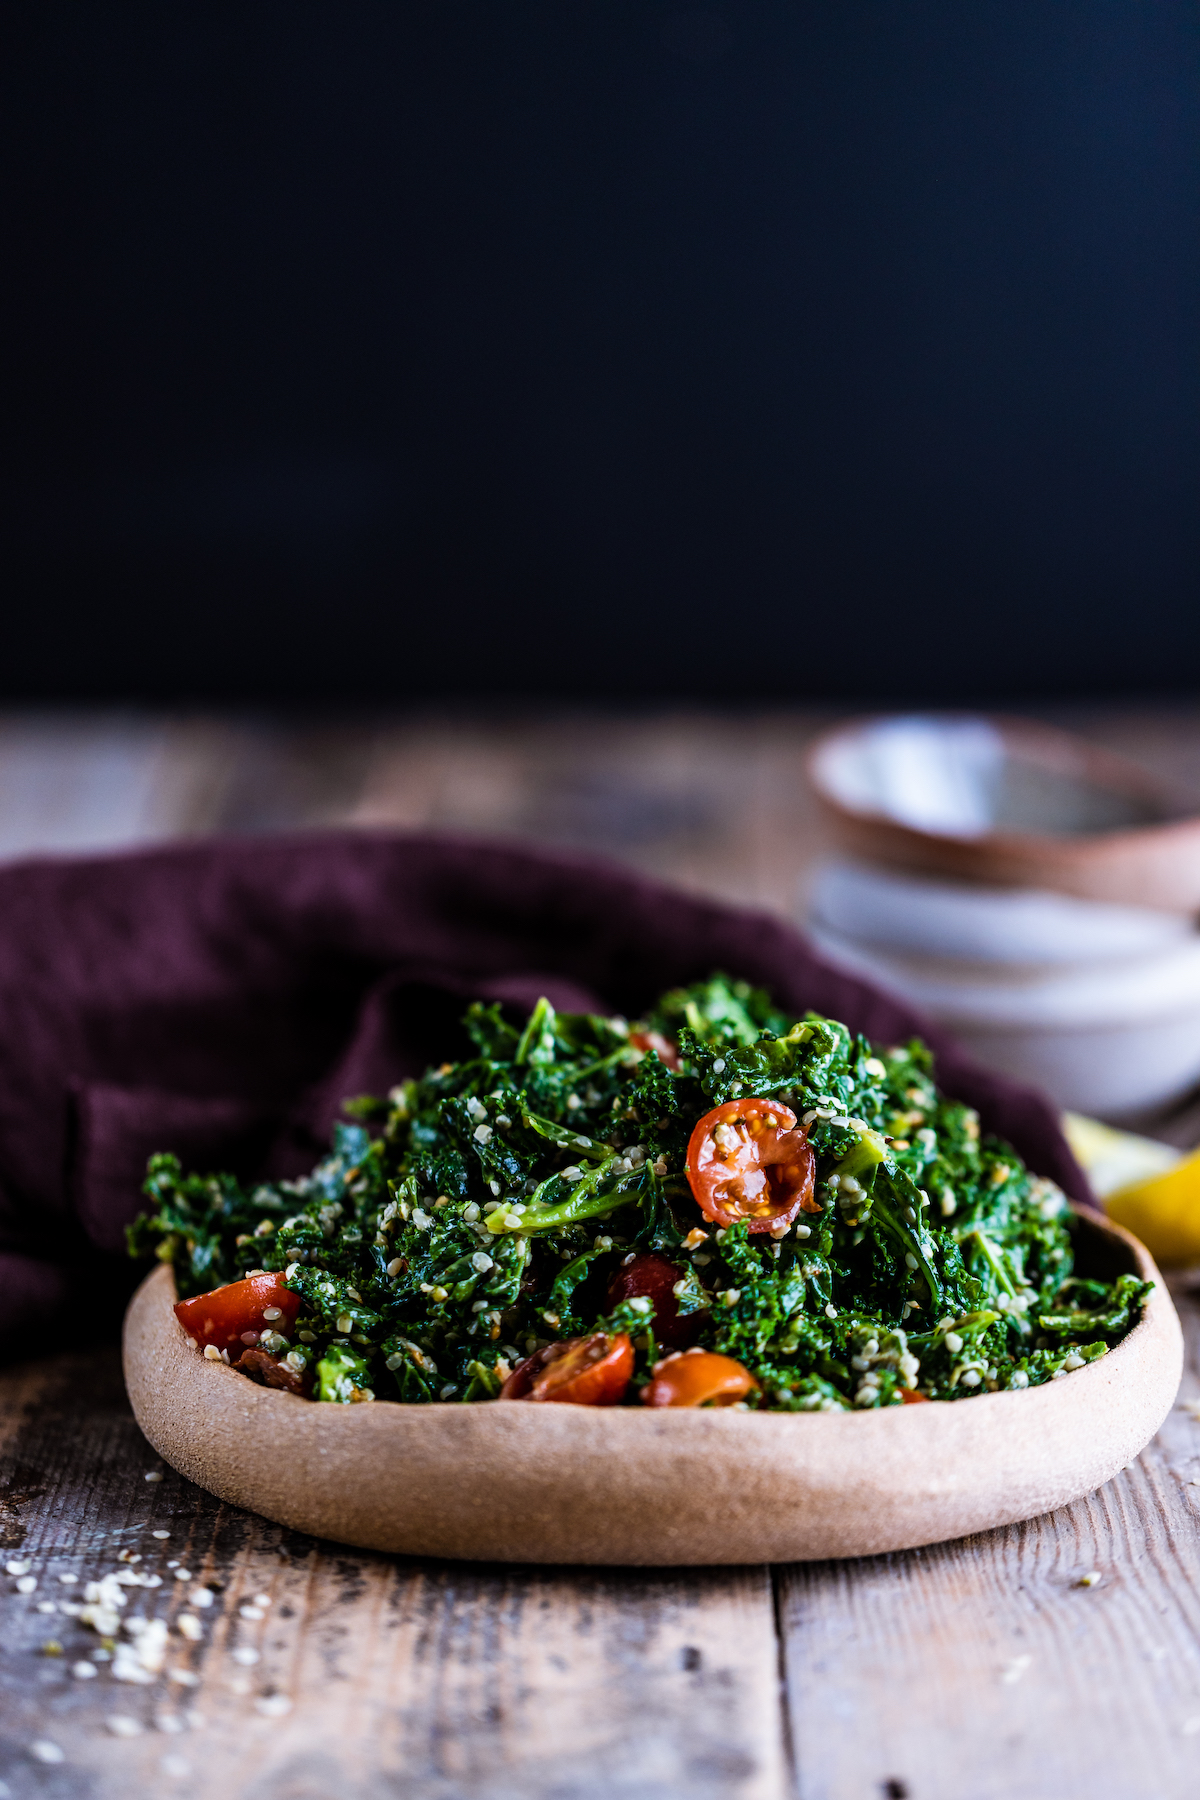 Kale avocado salad in a brown bowl on a wooden surface